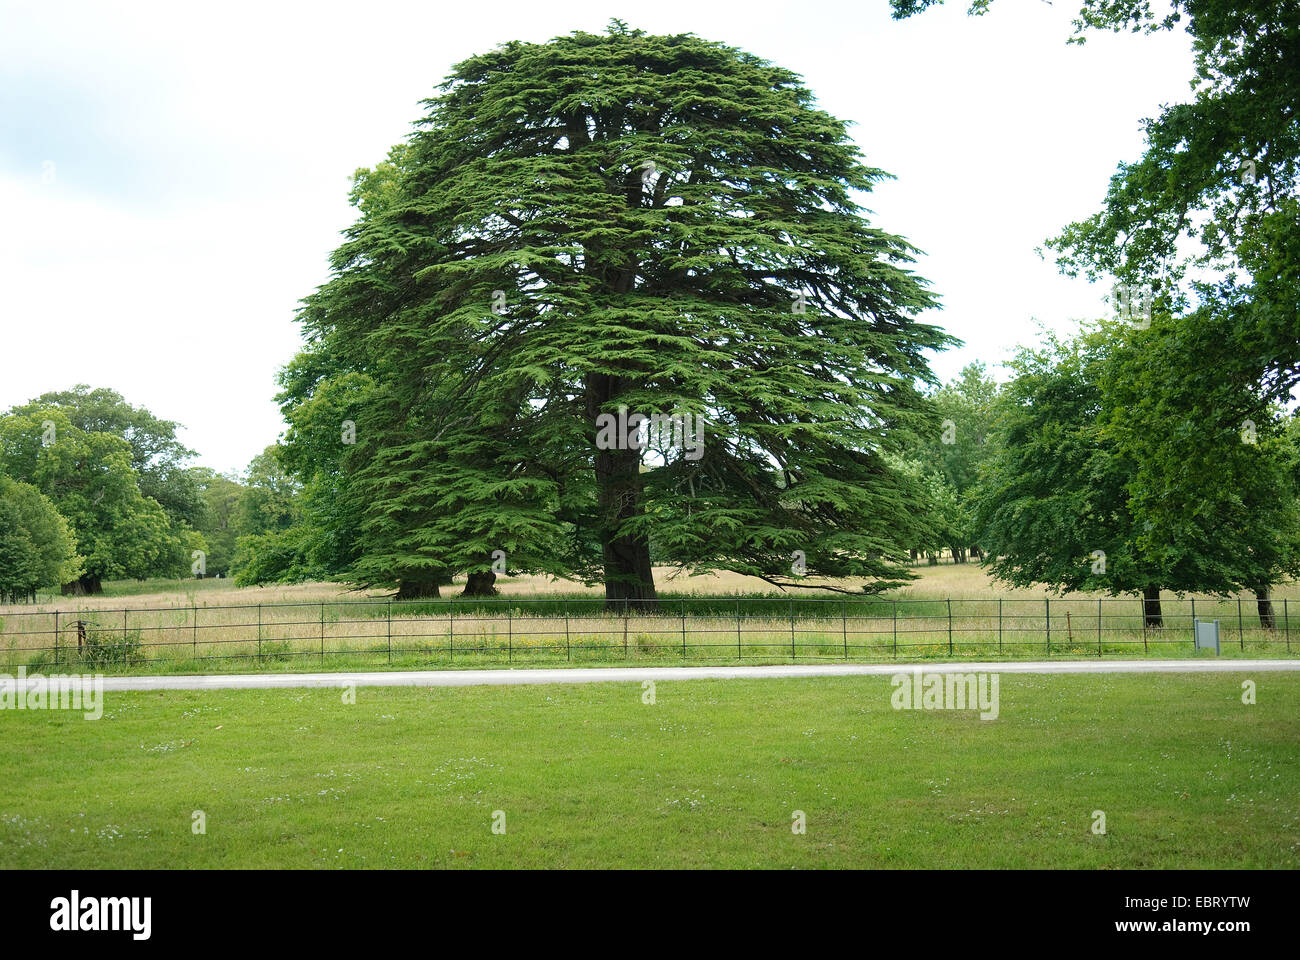 Cèdre du Liban (Cedrus libani), seul arbre Photo Stock